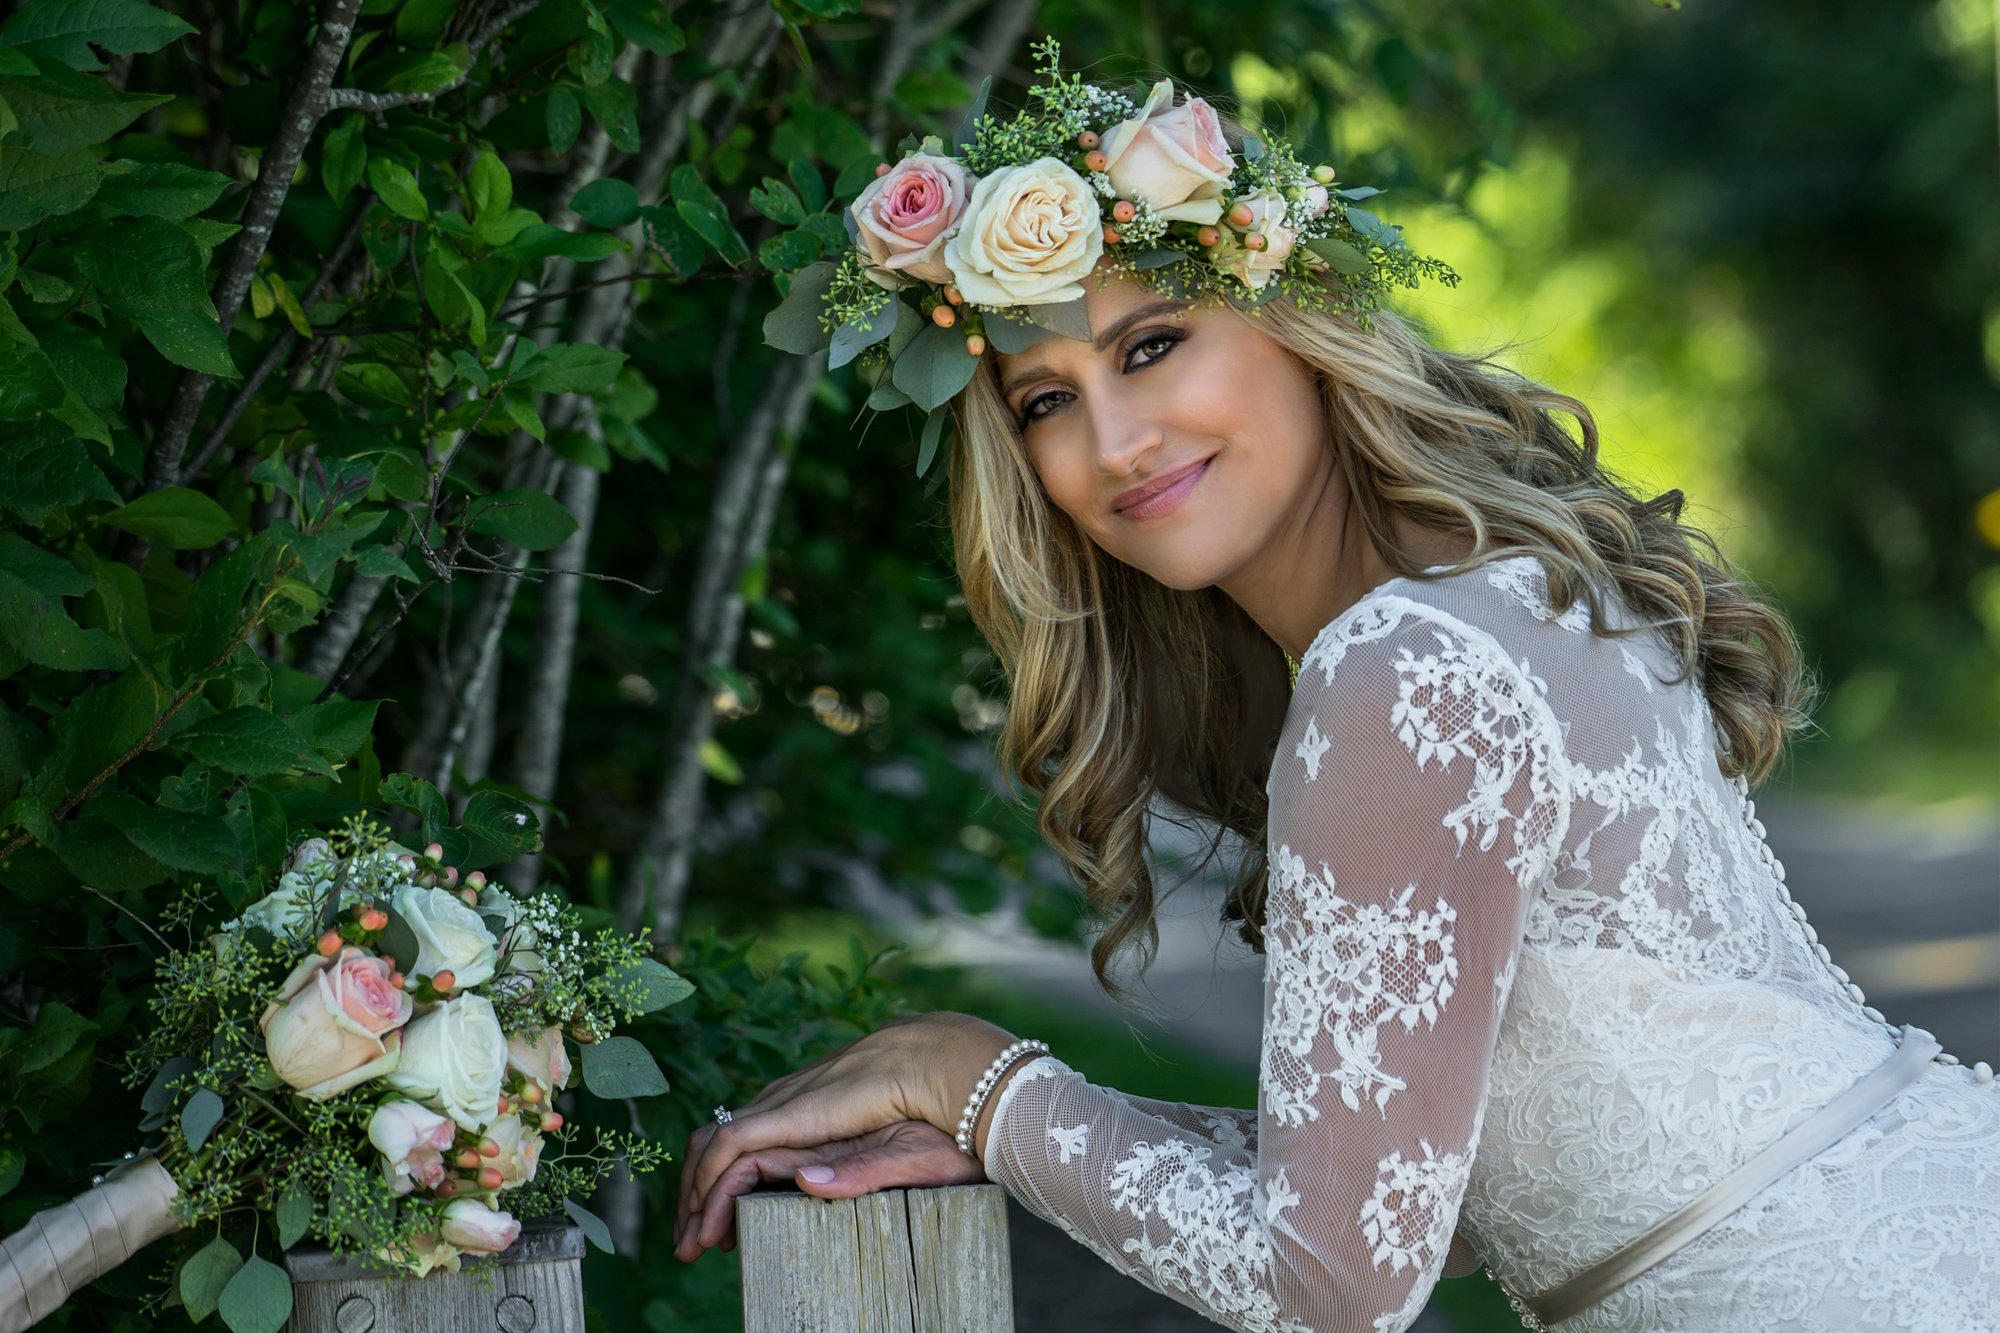 Headpieces a glamorous touch to help finish any bridal look 6 2015 photo provided by brielyn souza shows souza wearing a fresh floral crown on her wedding day in little compton ri bridal headpieces add a touch of izmirmasajfo